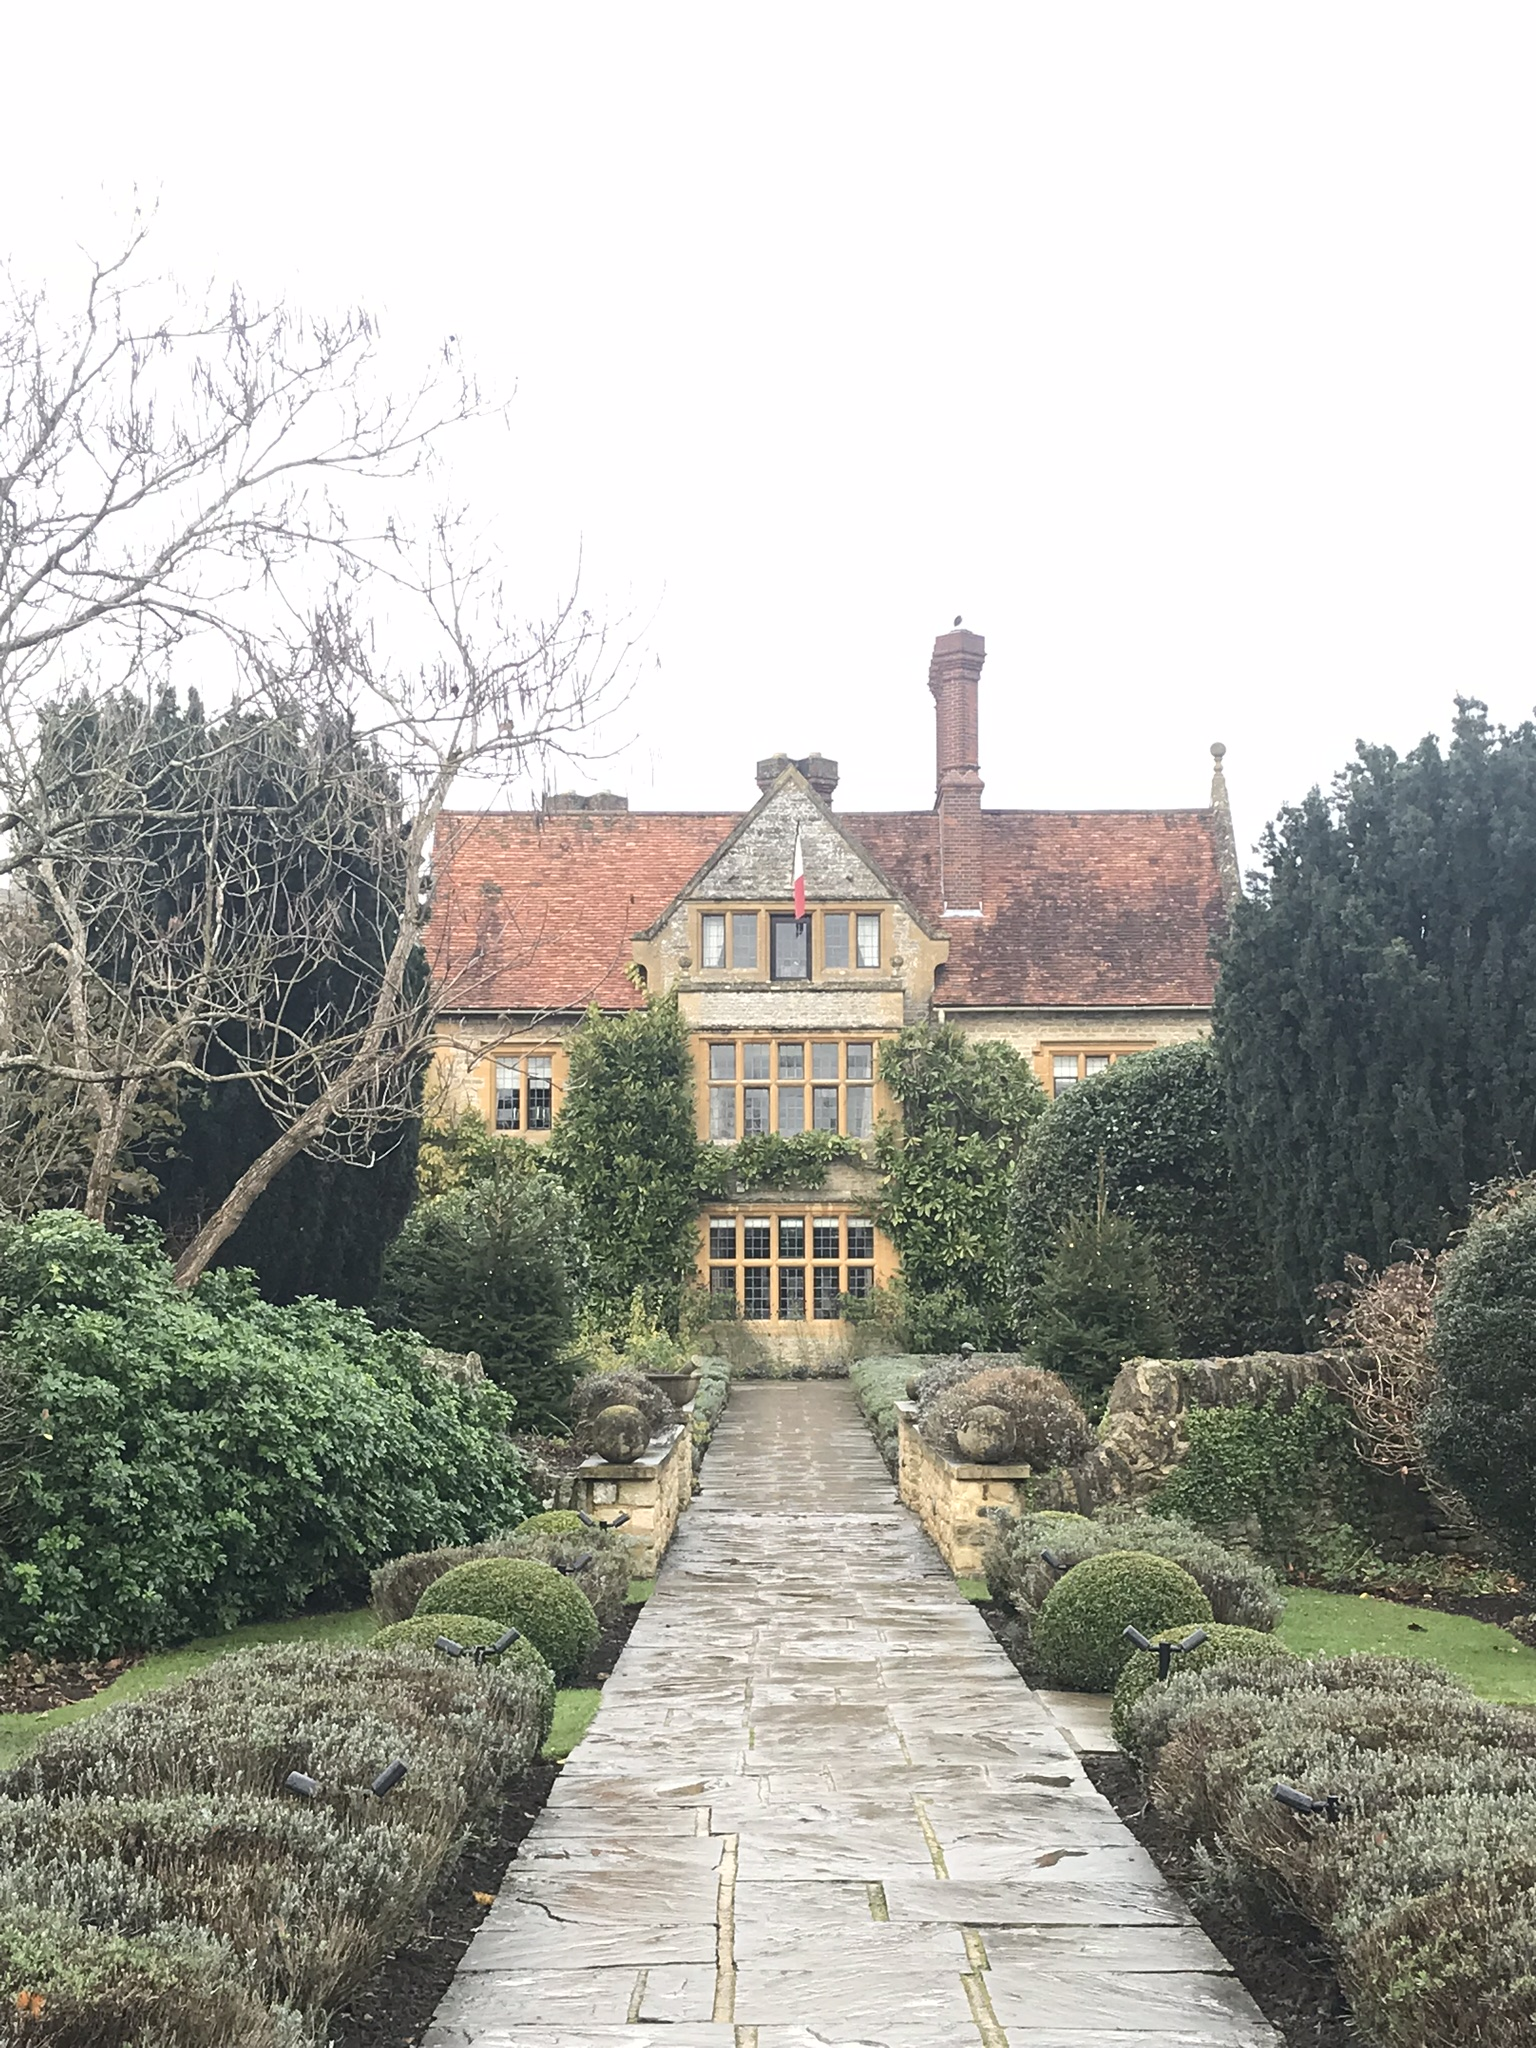 As I mentioned before, this year is a big birthday for me and Mr Bigg had very kindly booked a surprise weekend at Belmond Le Manoir. I would think that Belmond Le Manoir is quite splendid at any time of the year. In our case, we had the Christmas spirit all around, which was lovely.